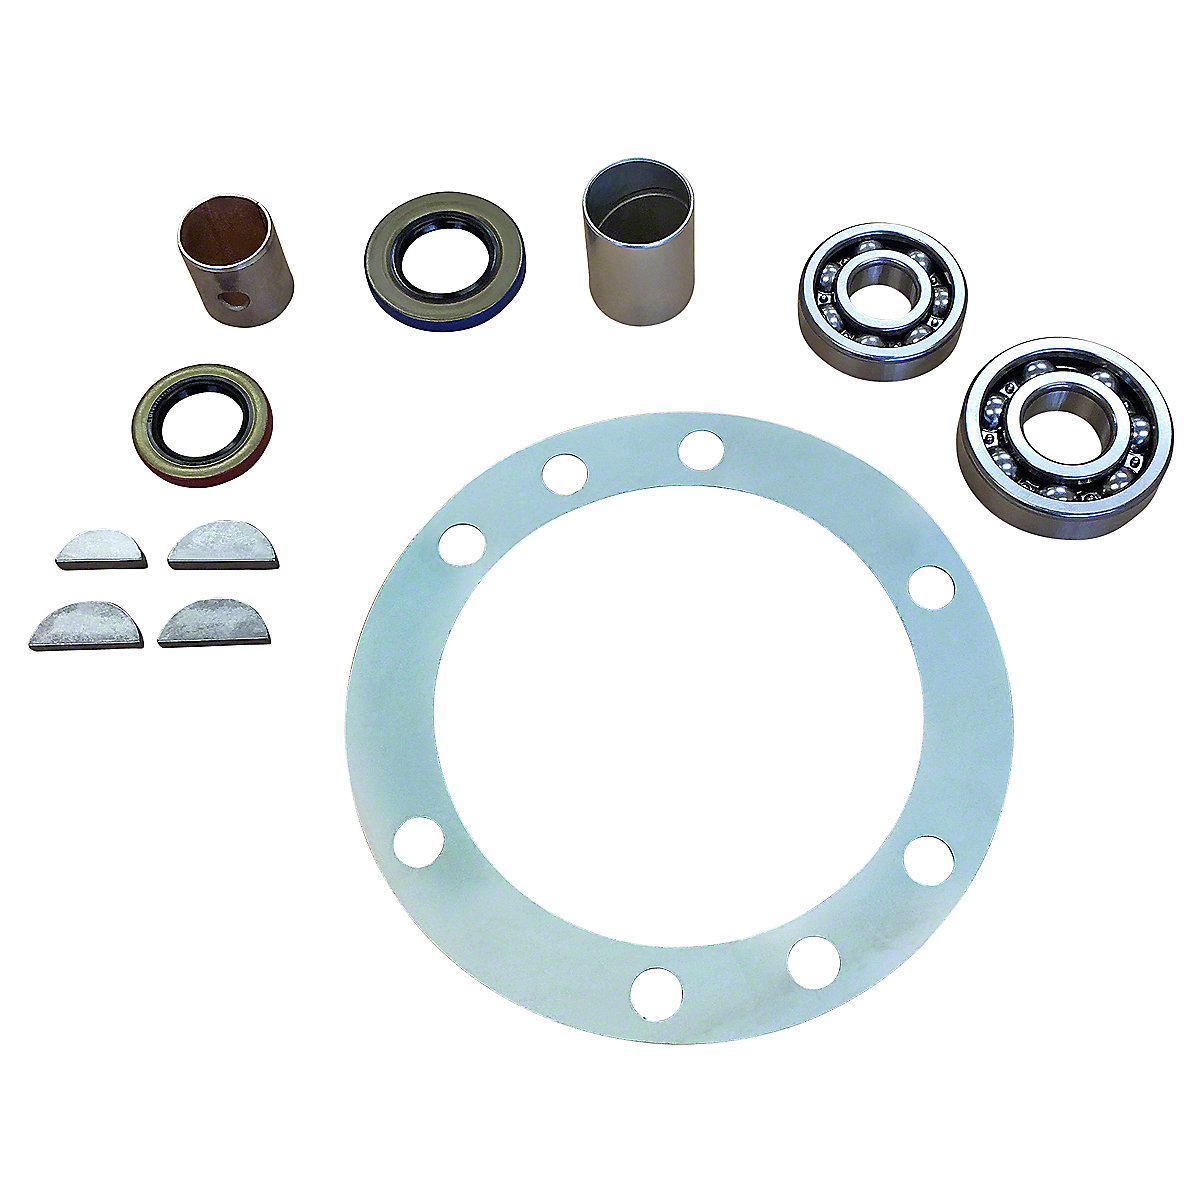 IHS1800New and Improved! 11-Piece Steering Sector Bushing, Bearing & Seal Kit